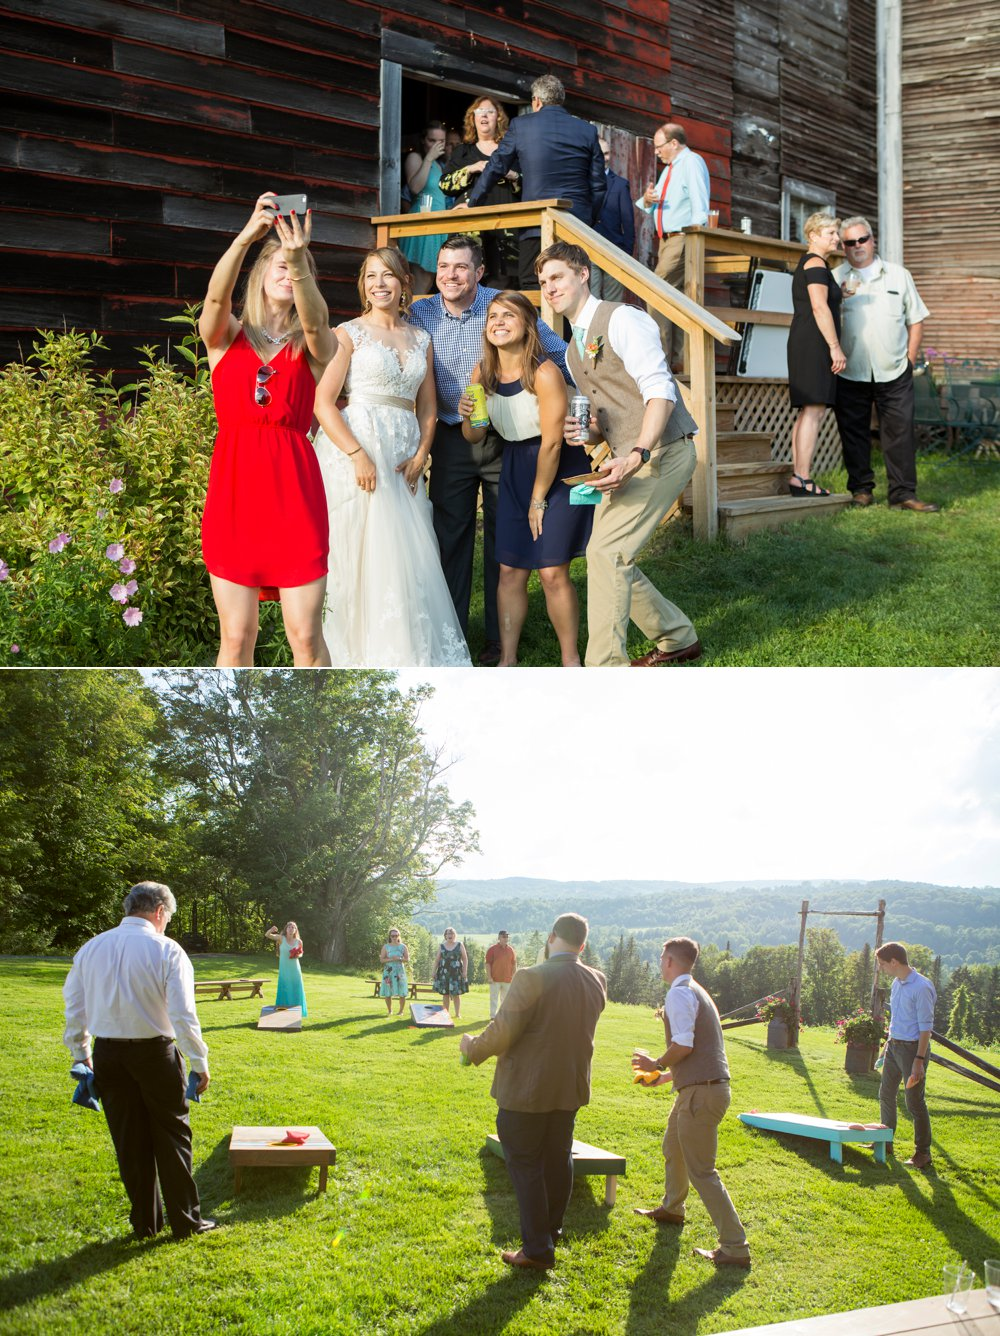 SomerbyJonesPhotography_VermontWedding_CyrBarn_CryBarnWedding_0043.jpg